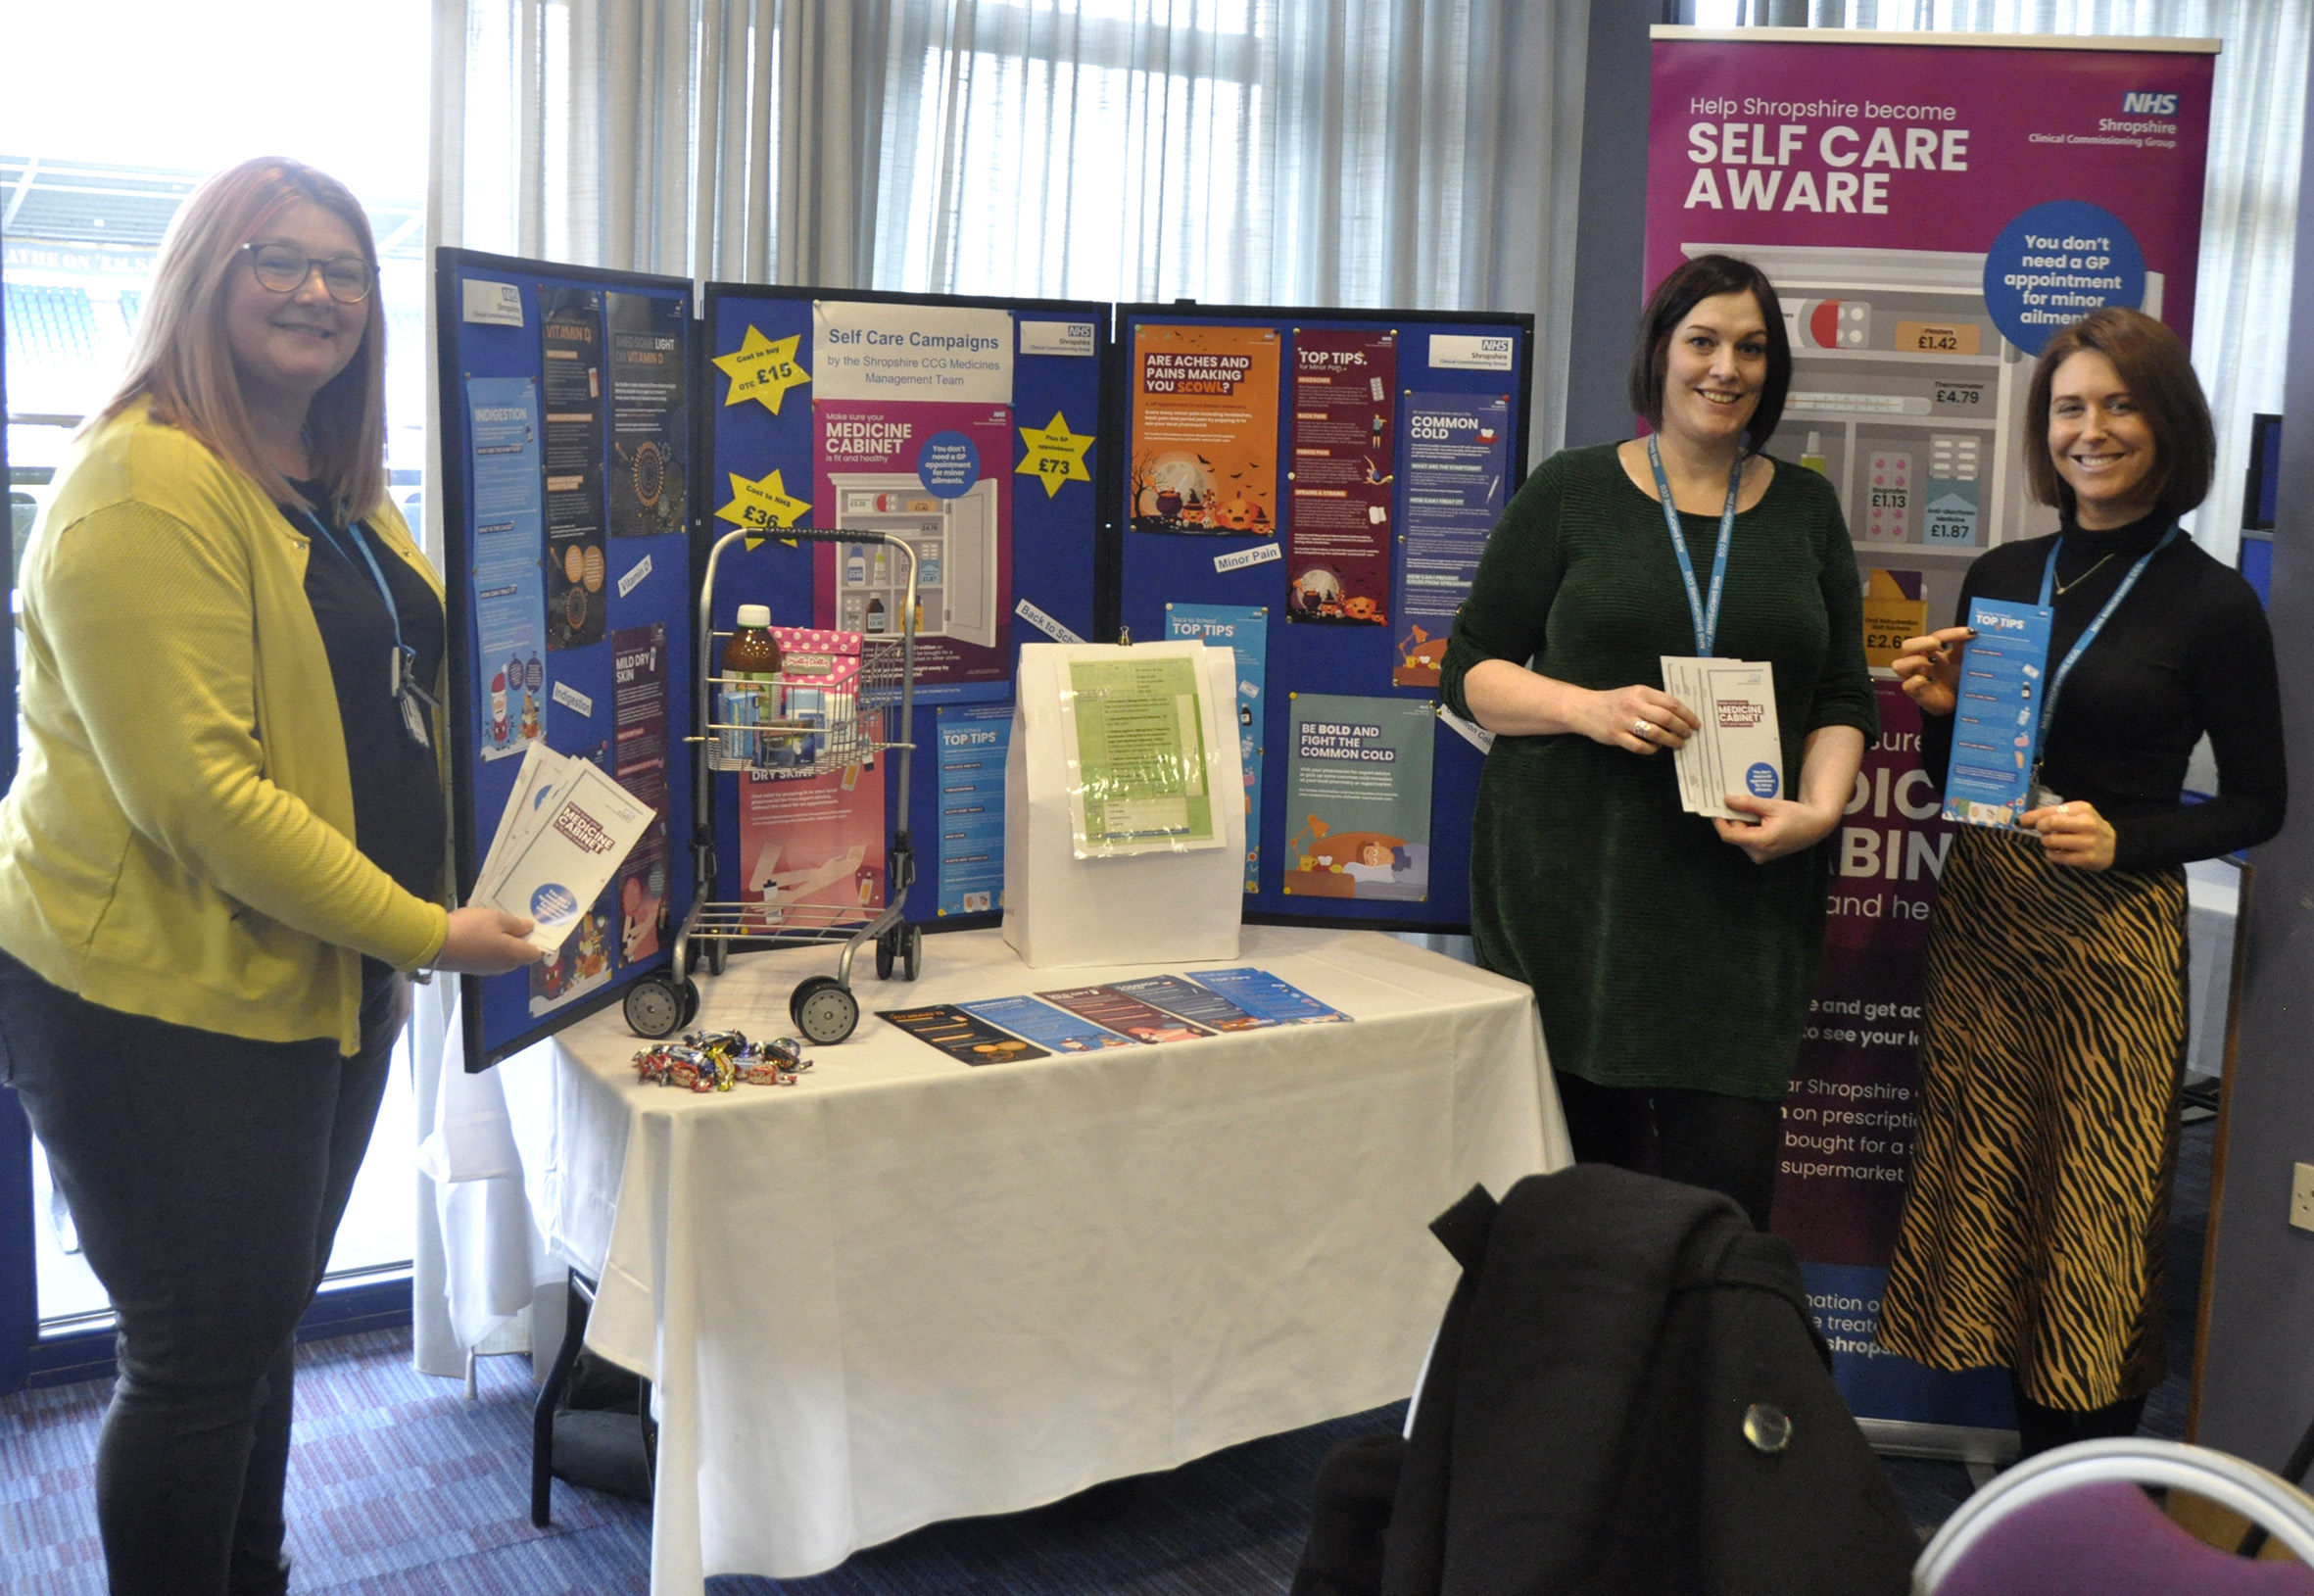 Shropshire Clinical Commissioning Group